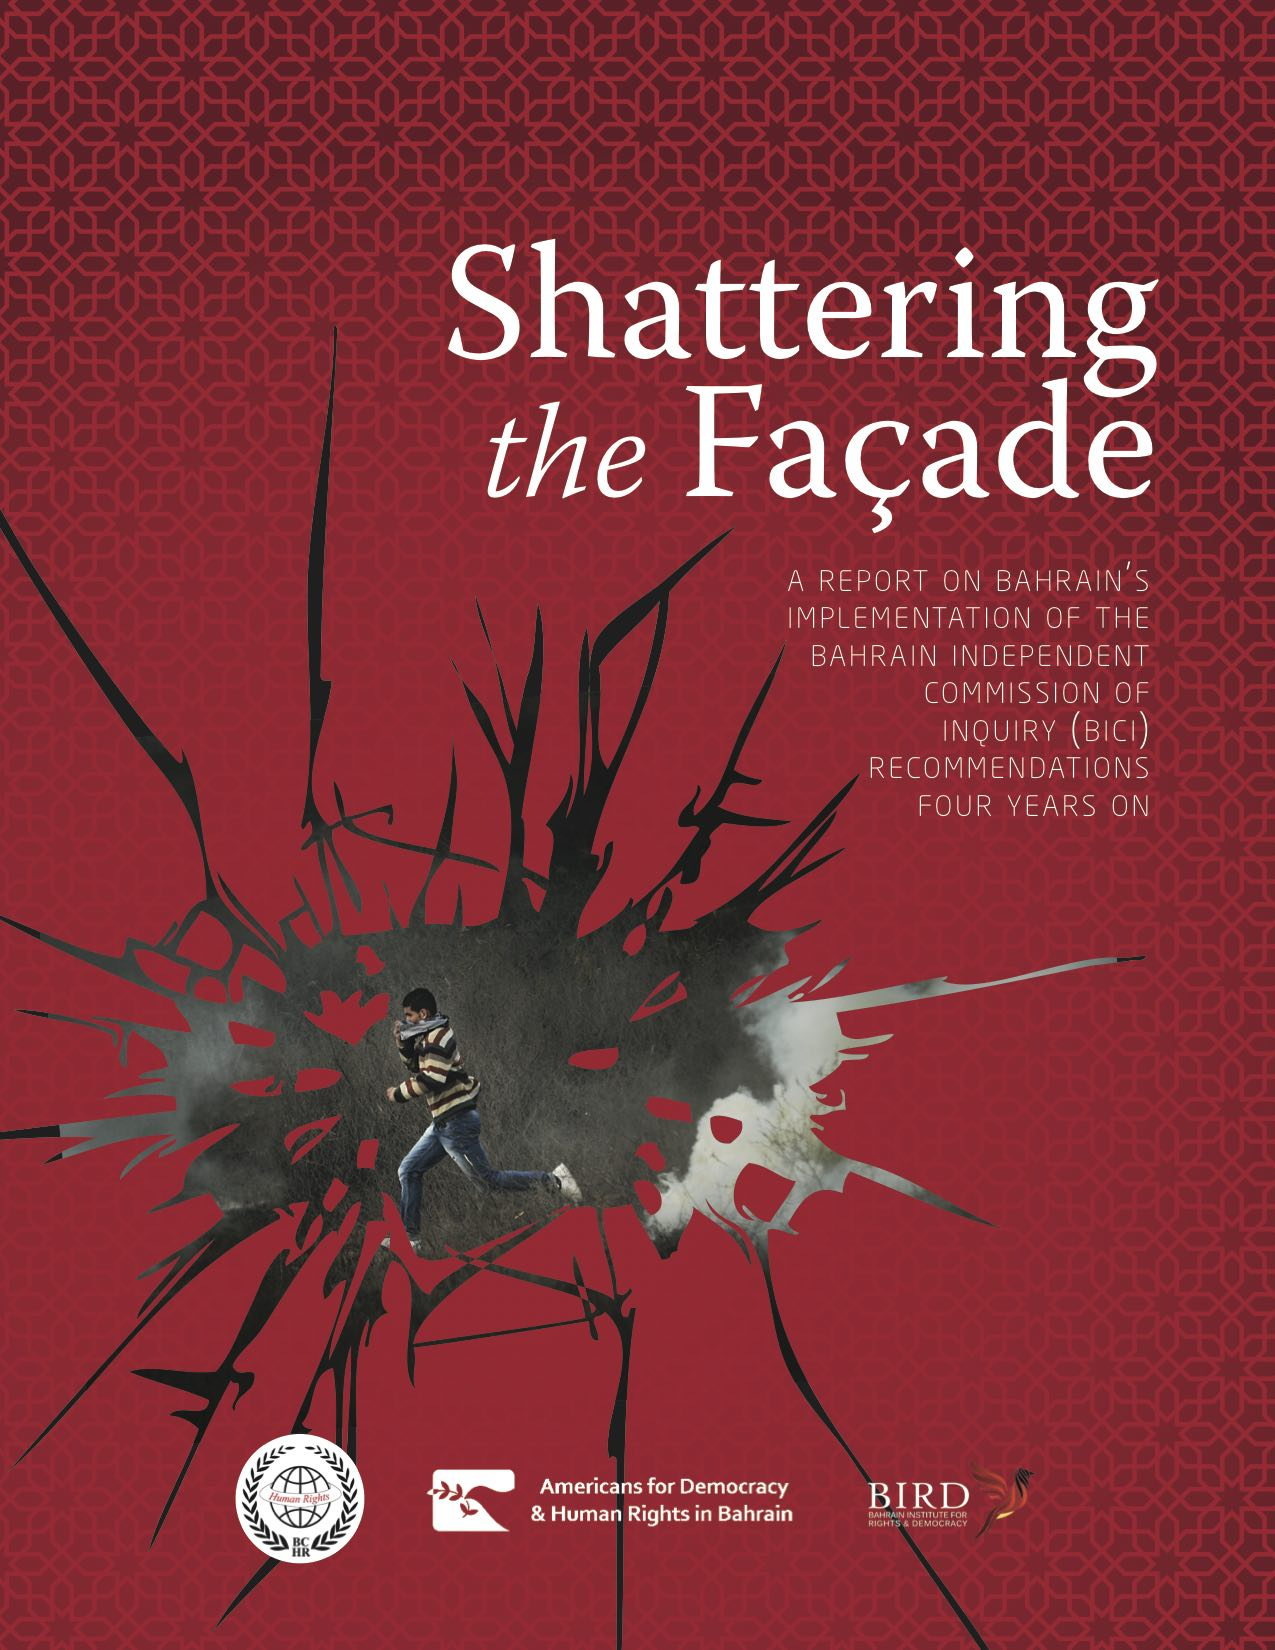 Shattering the Facade: A Report on Bahrain's Implementation of the Bahrain Independent Commission of Inquiry (BICI)